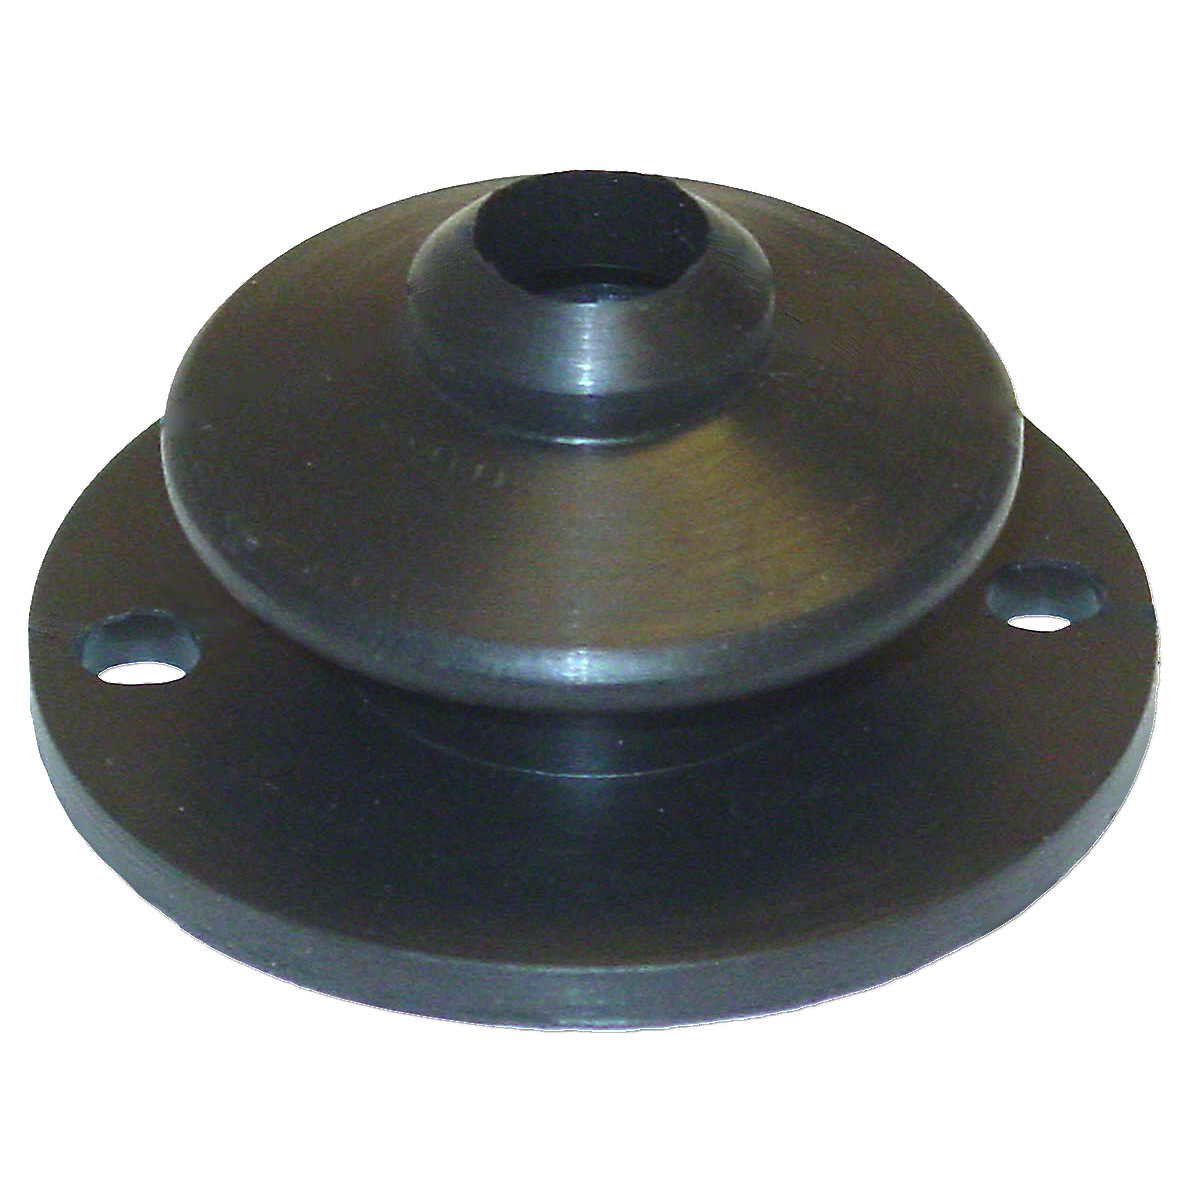 OLS090 Hydraulic Control Lever Cover / Rubber Boot